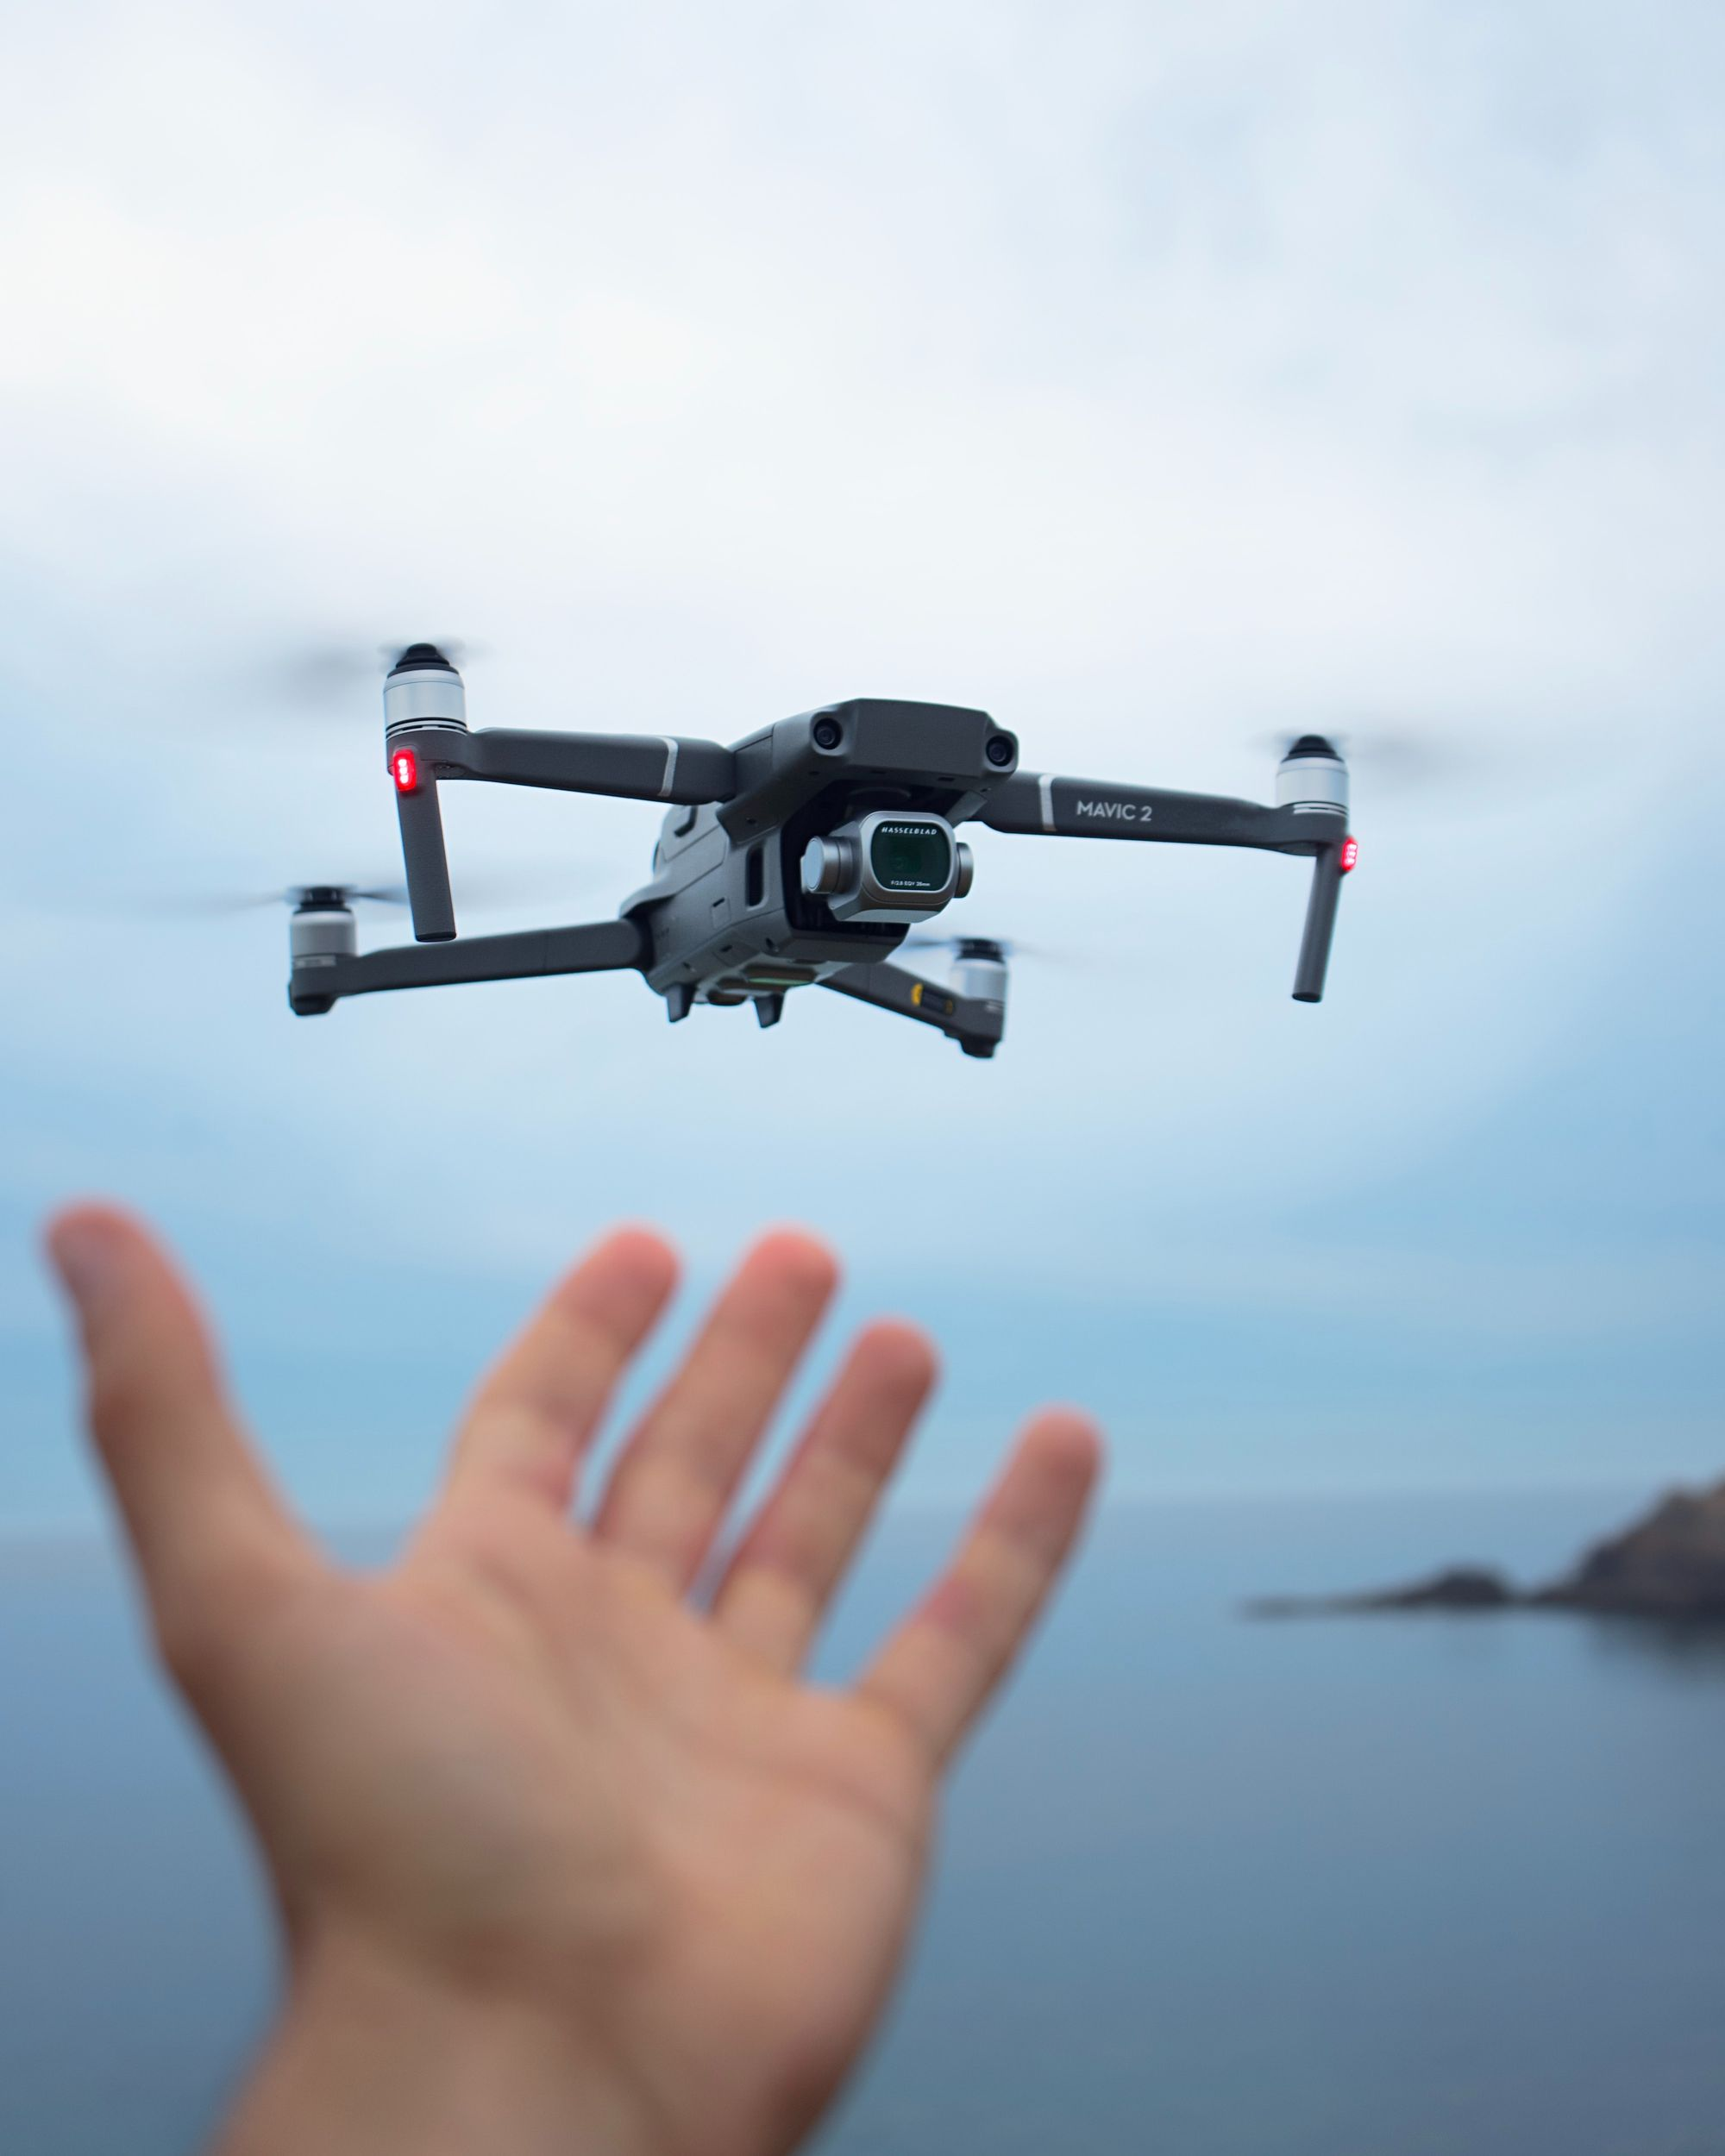 Practice flying with your drone